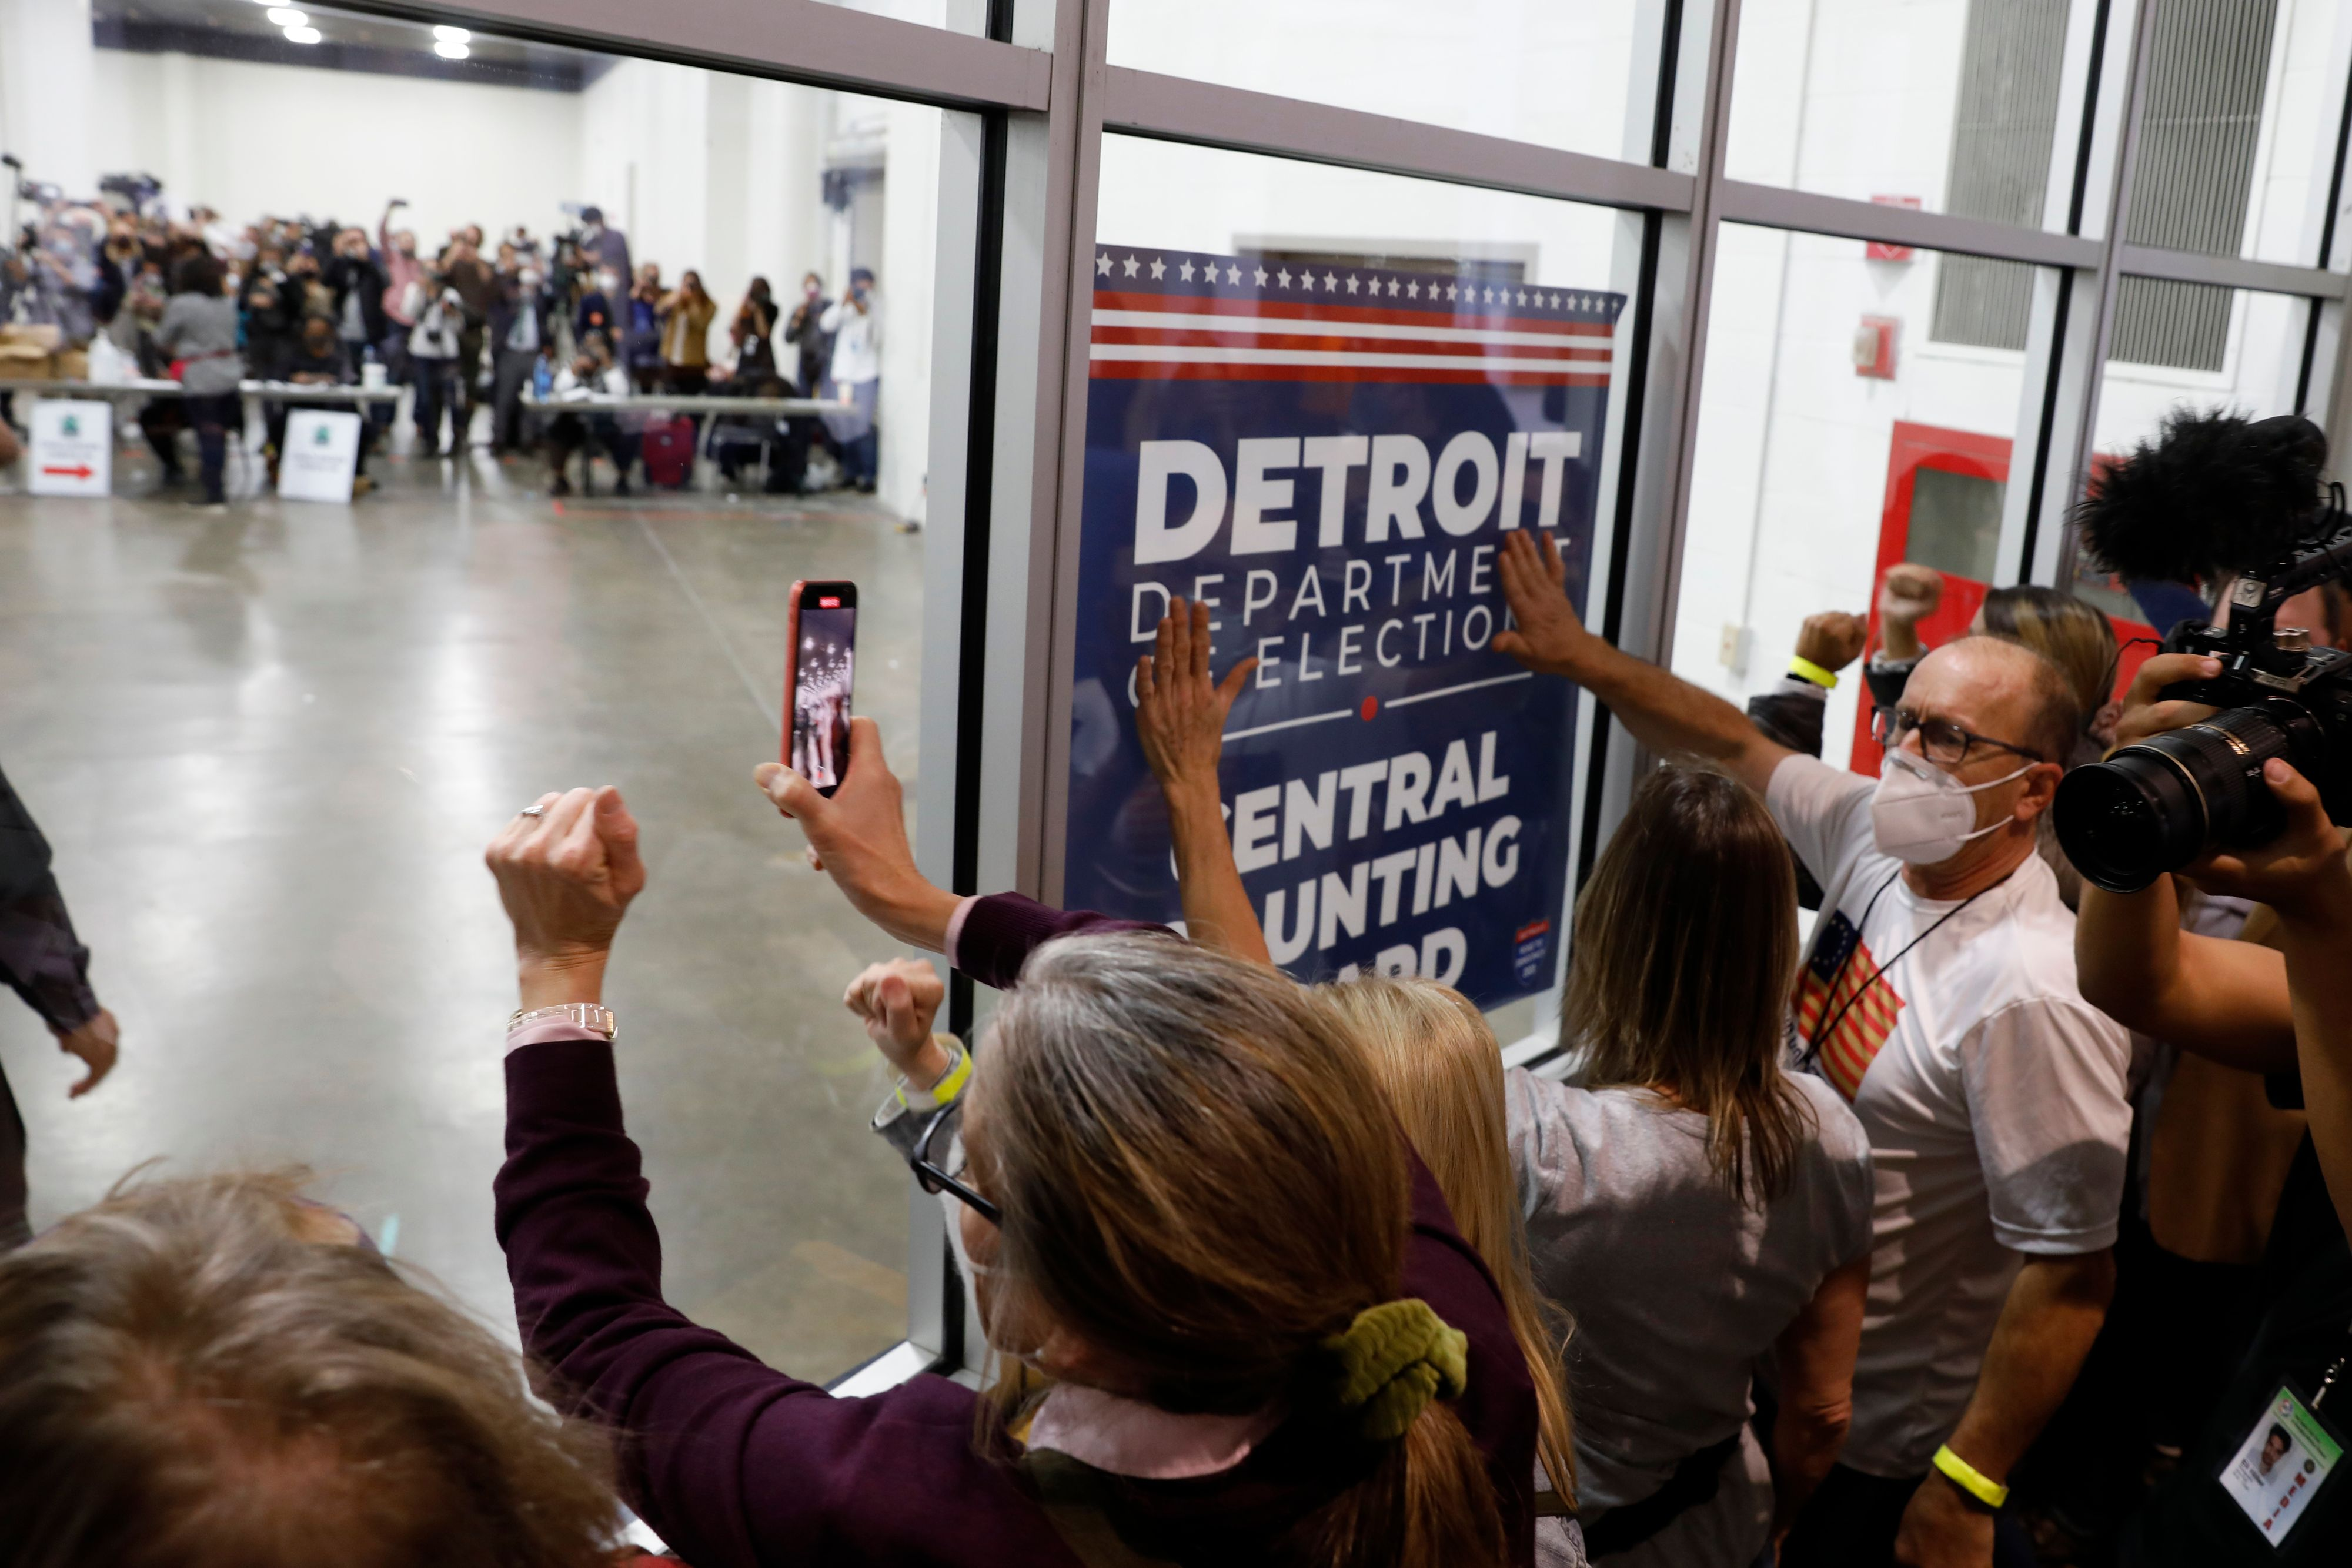 Supporters of  President Donald Trump bang on the glass during a protest outside a room where absentee ballots were being counted at the TCF Center in Detroit on Nov. 4, 2020.